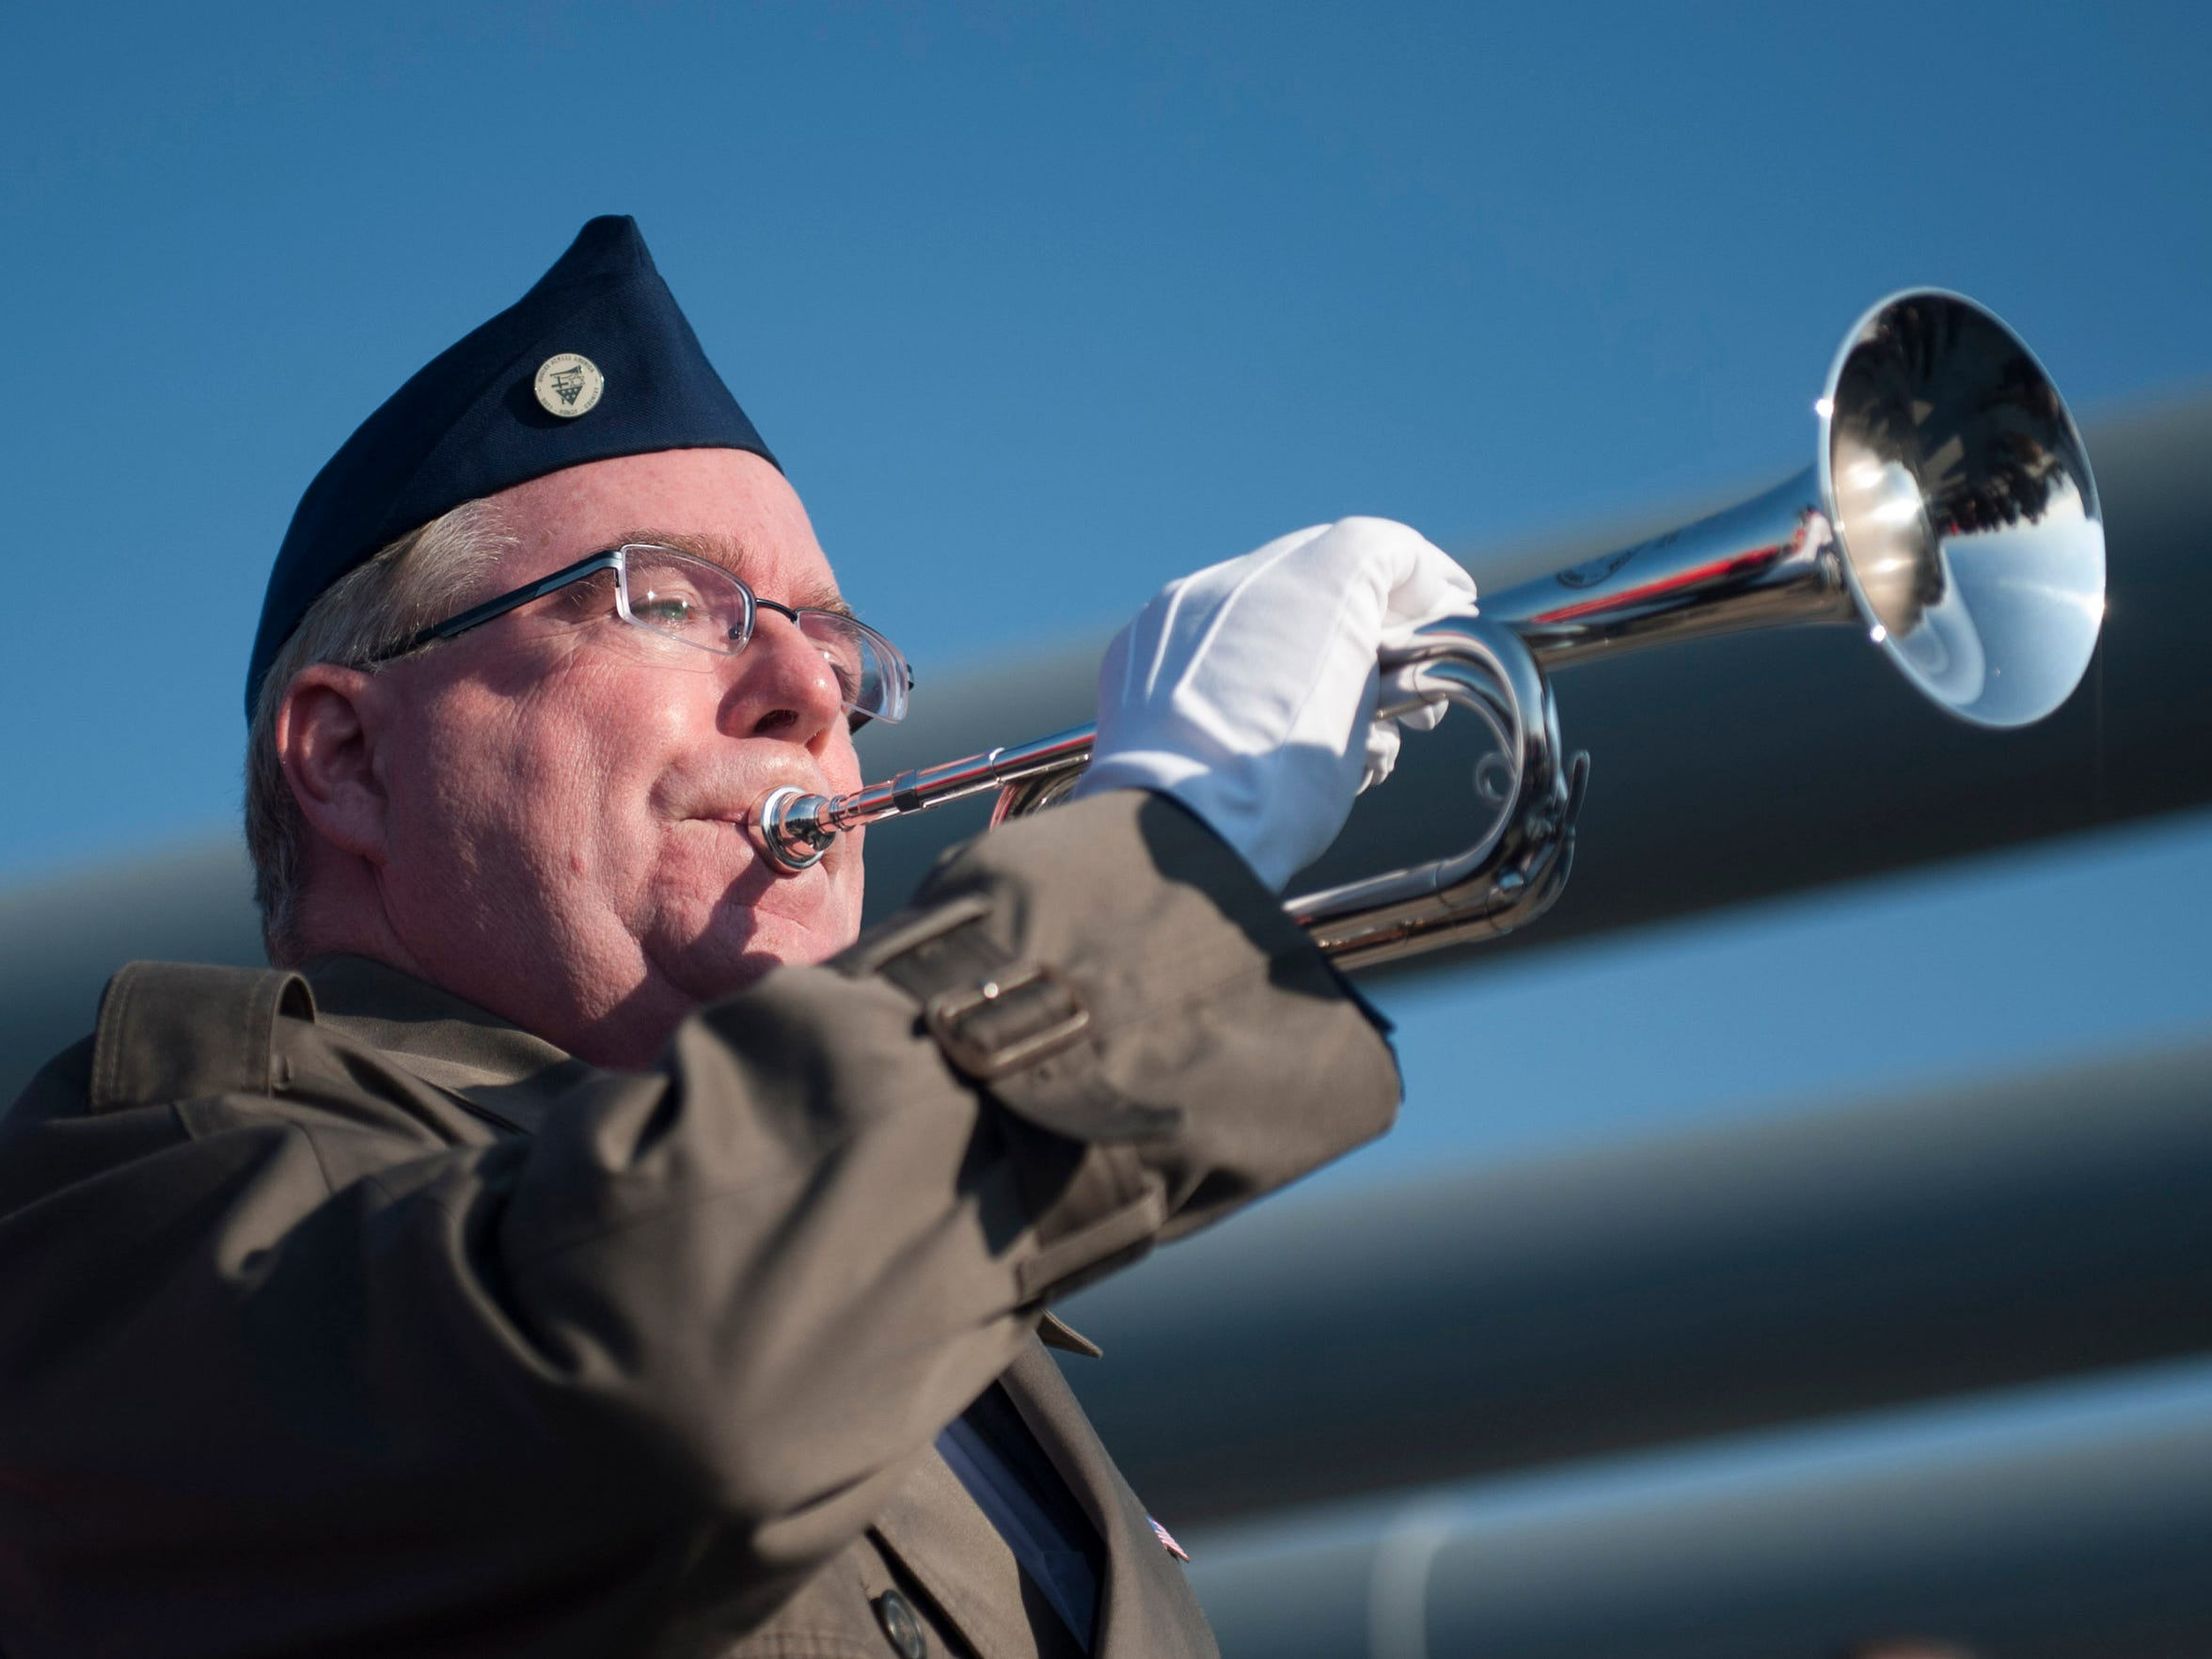 Bugler Greg Murphy plays Taps during the Pearl Harbor Day Commemoration aboard the Battleship New Jersey. Monday, December 7, 2015.